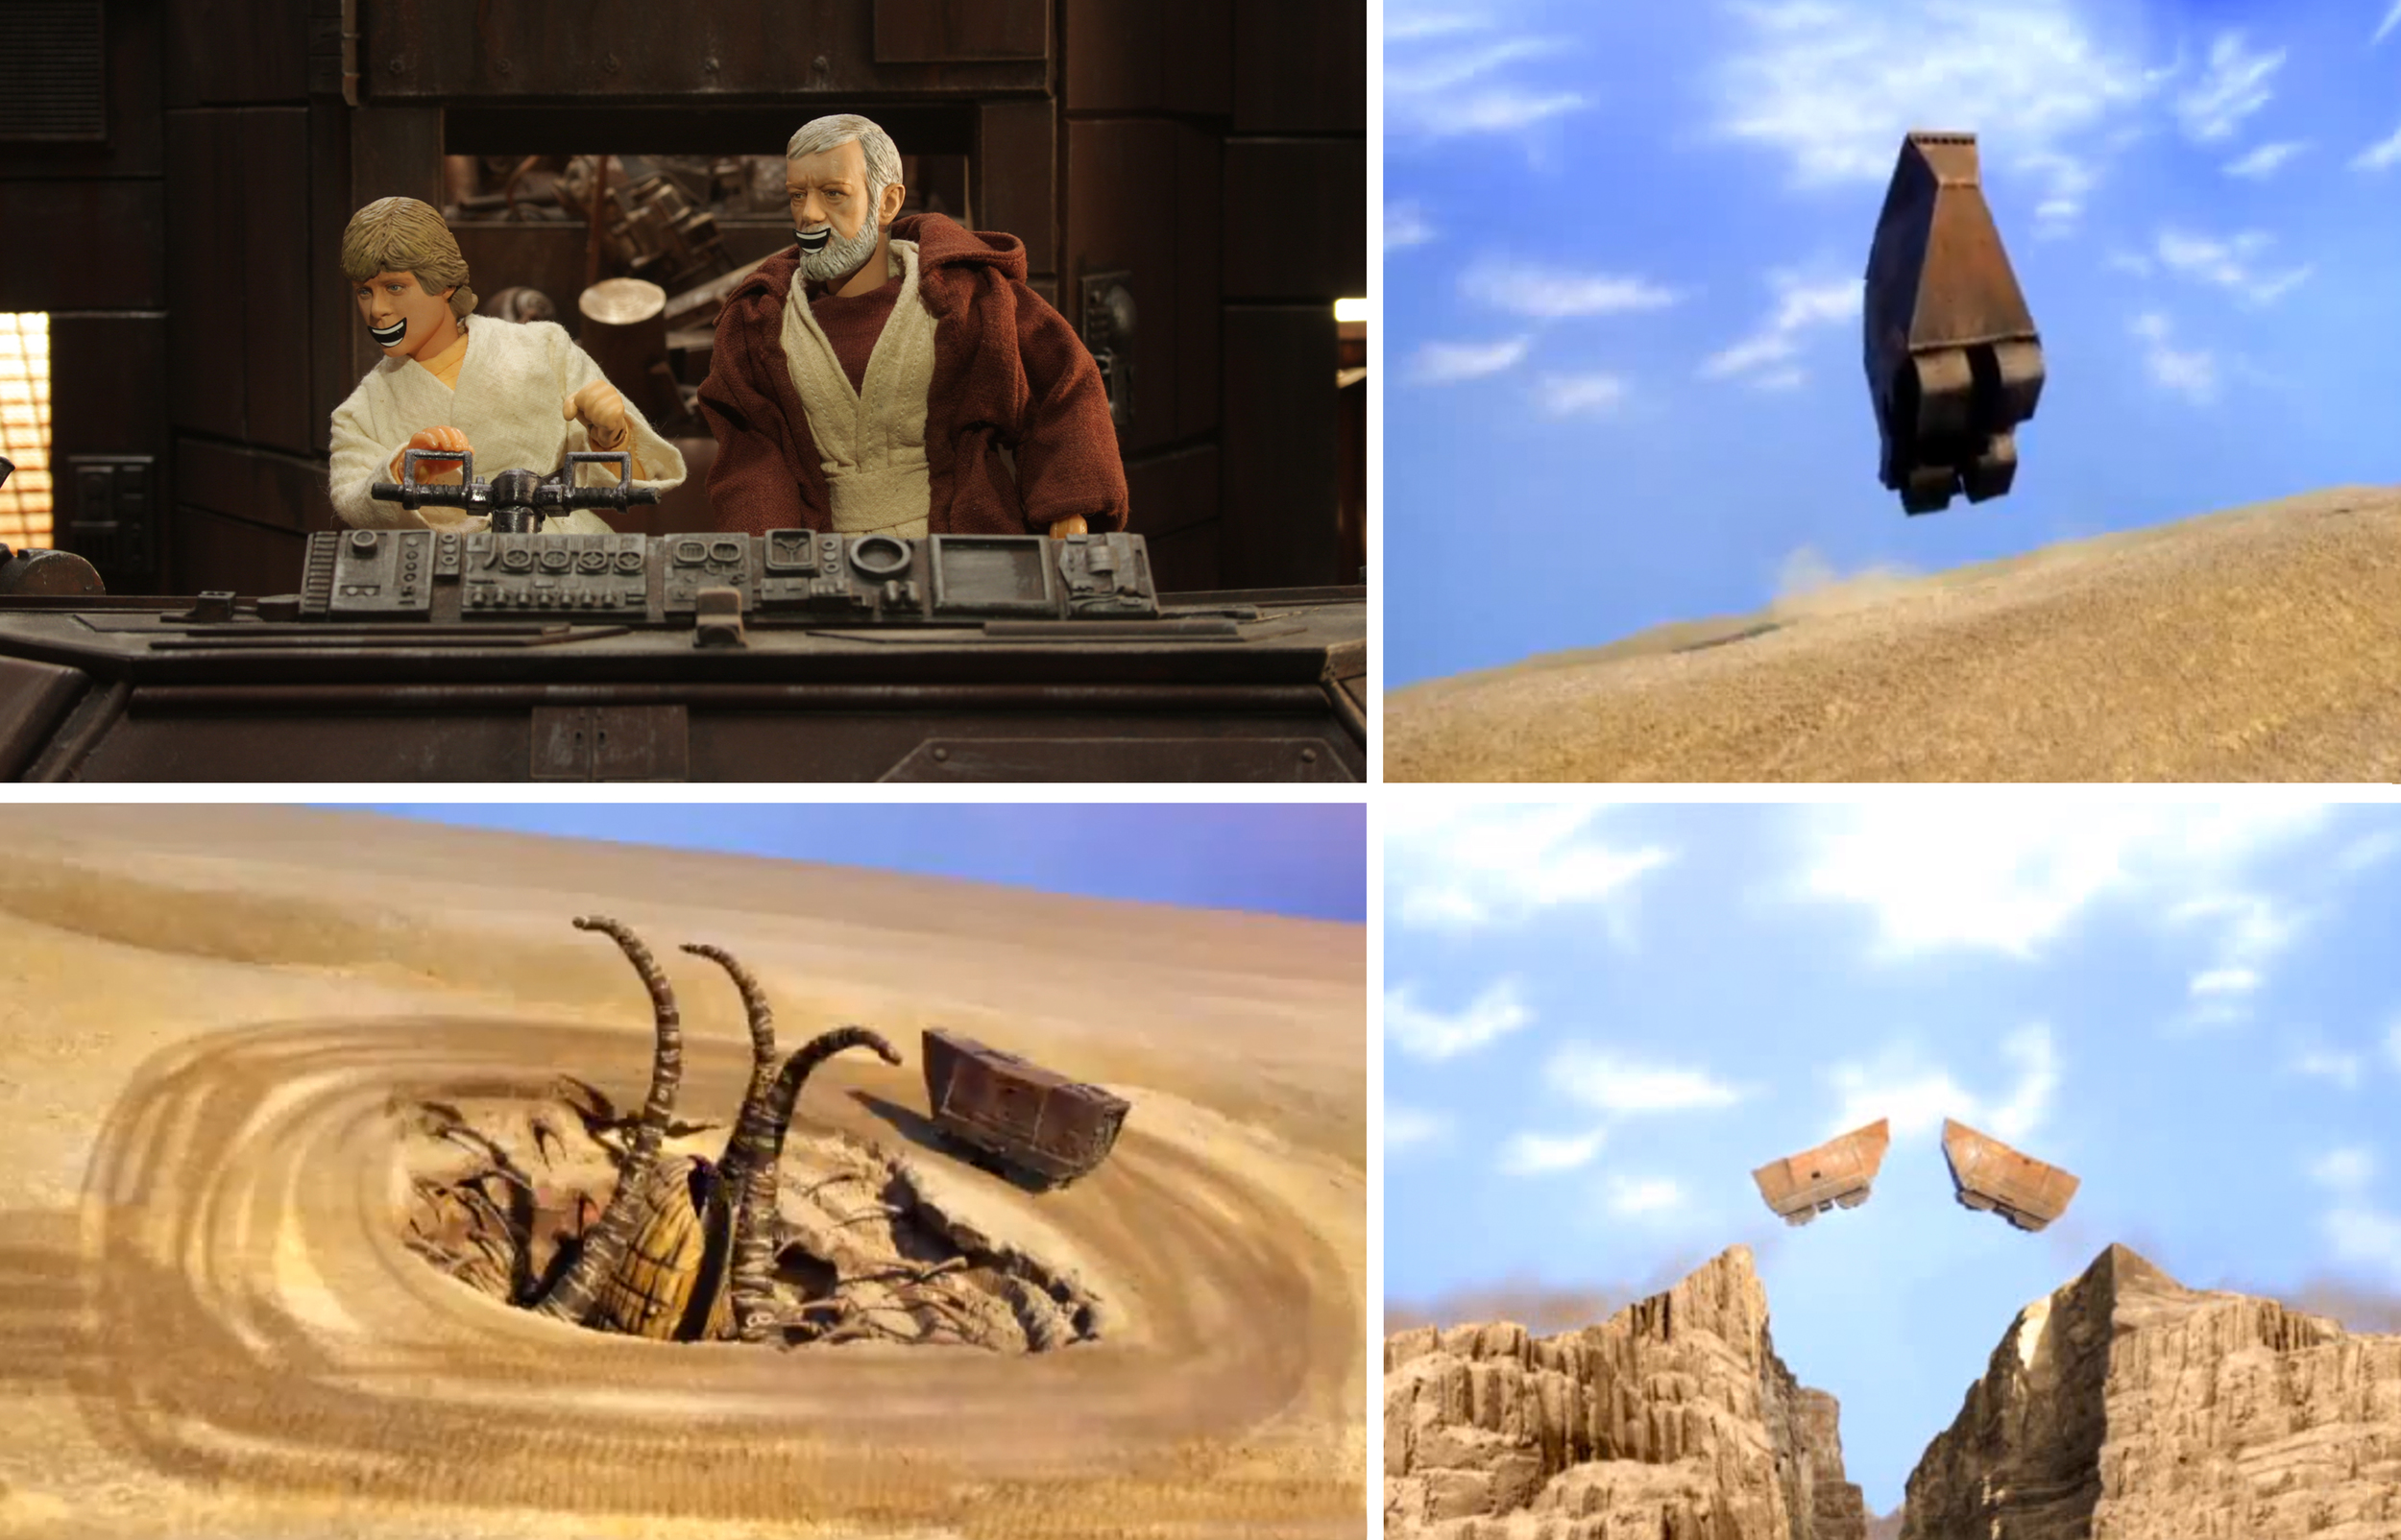 Robot Chicken Star Wars 3 Image 70.jpg